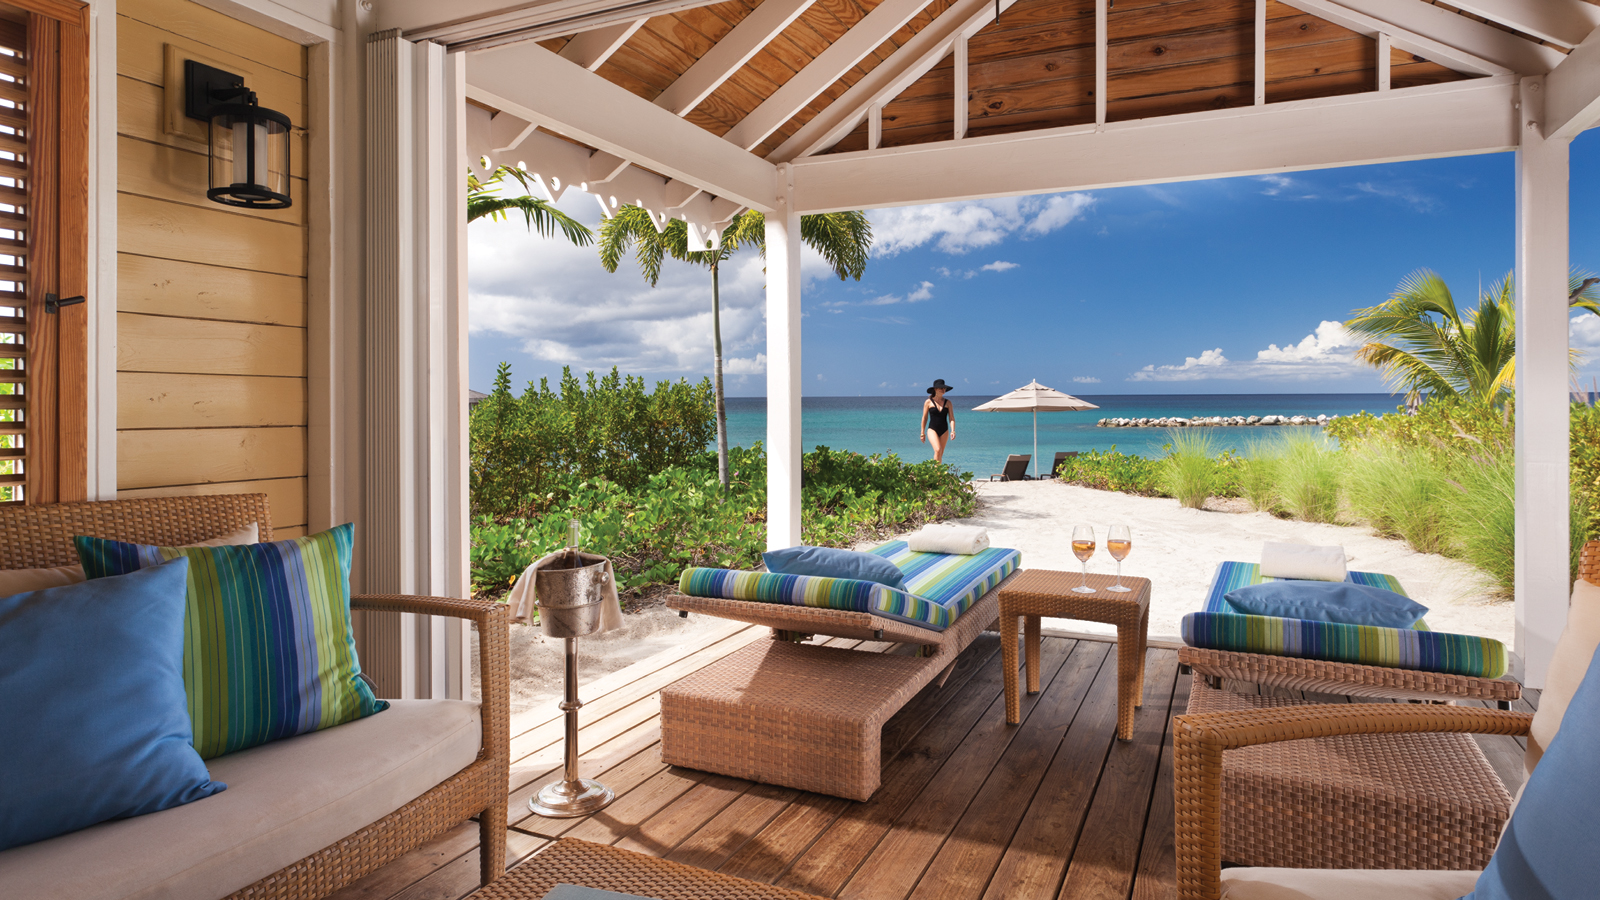 Hotel Nevis Wellness And Spa Spa Under The Stars Evening For One Special Couple Four Seasons